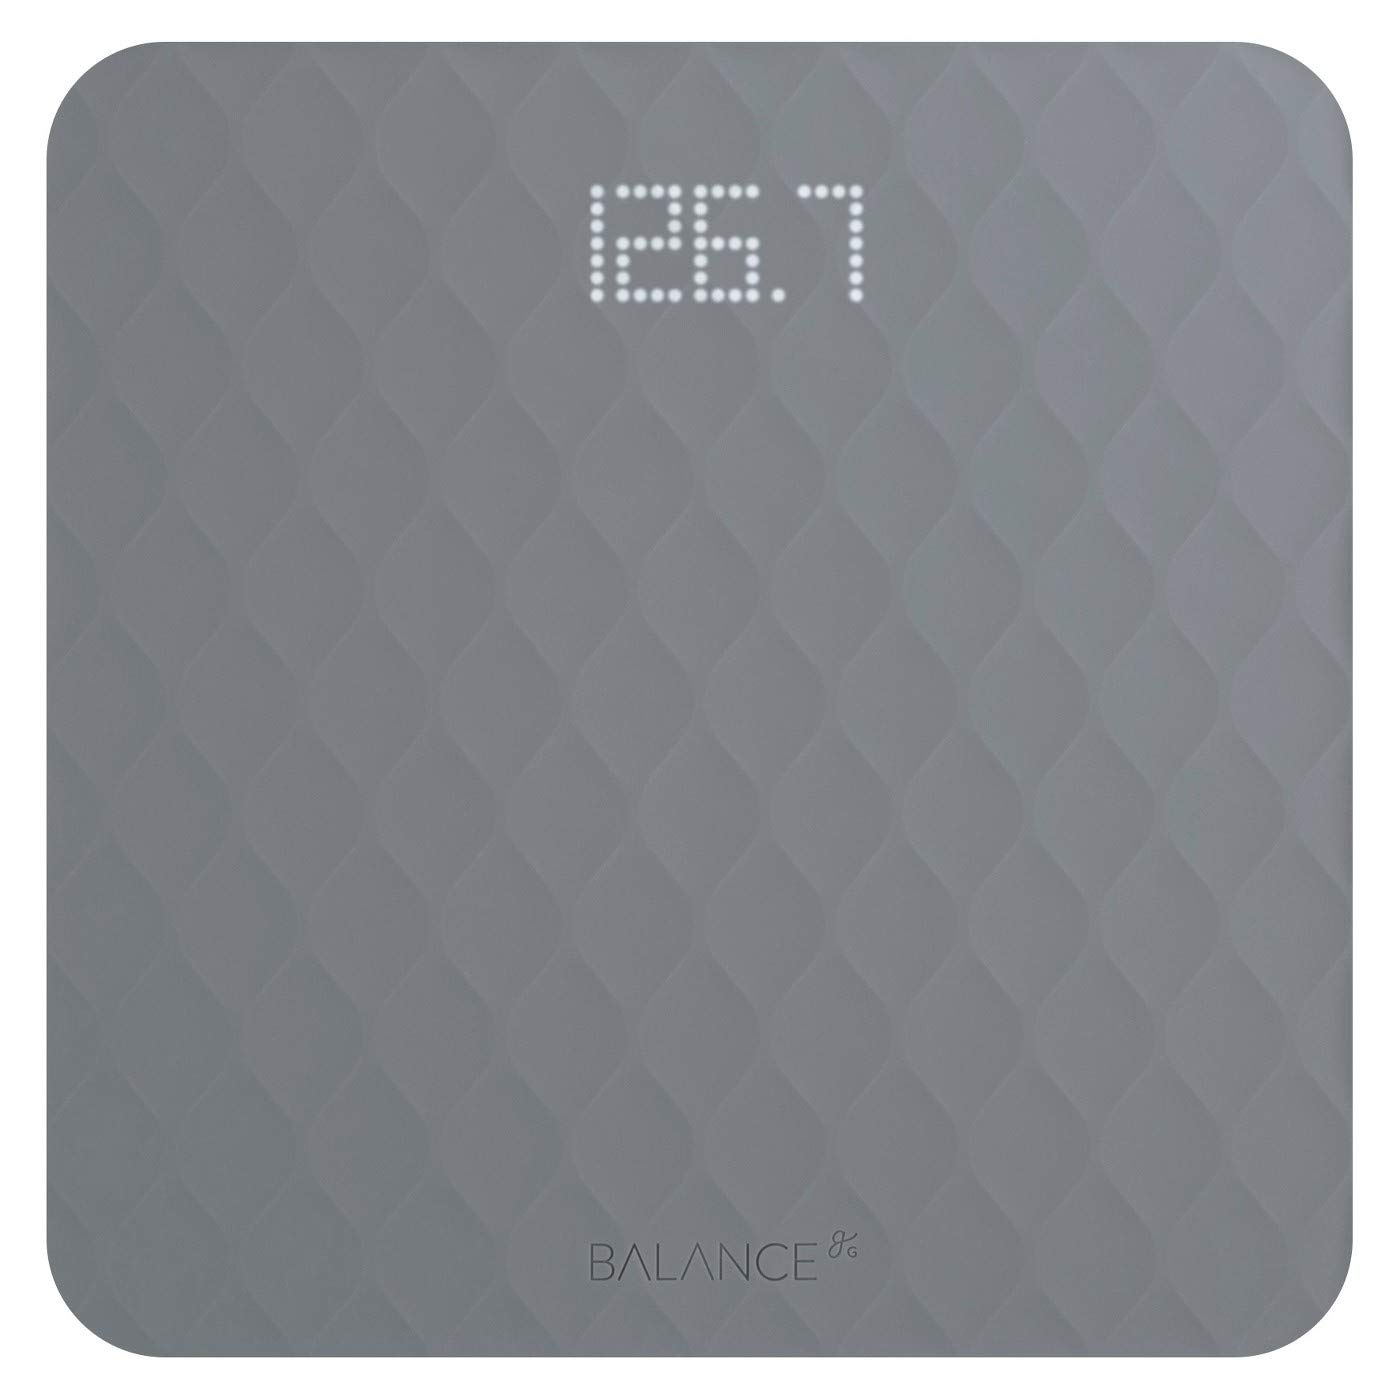 Greater Goods Designer Bathroom Scale with Textured Silicone Cover - Gray